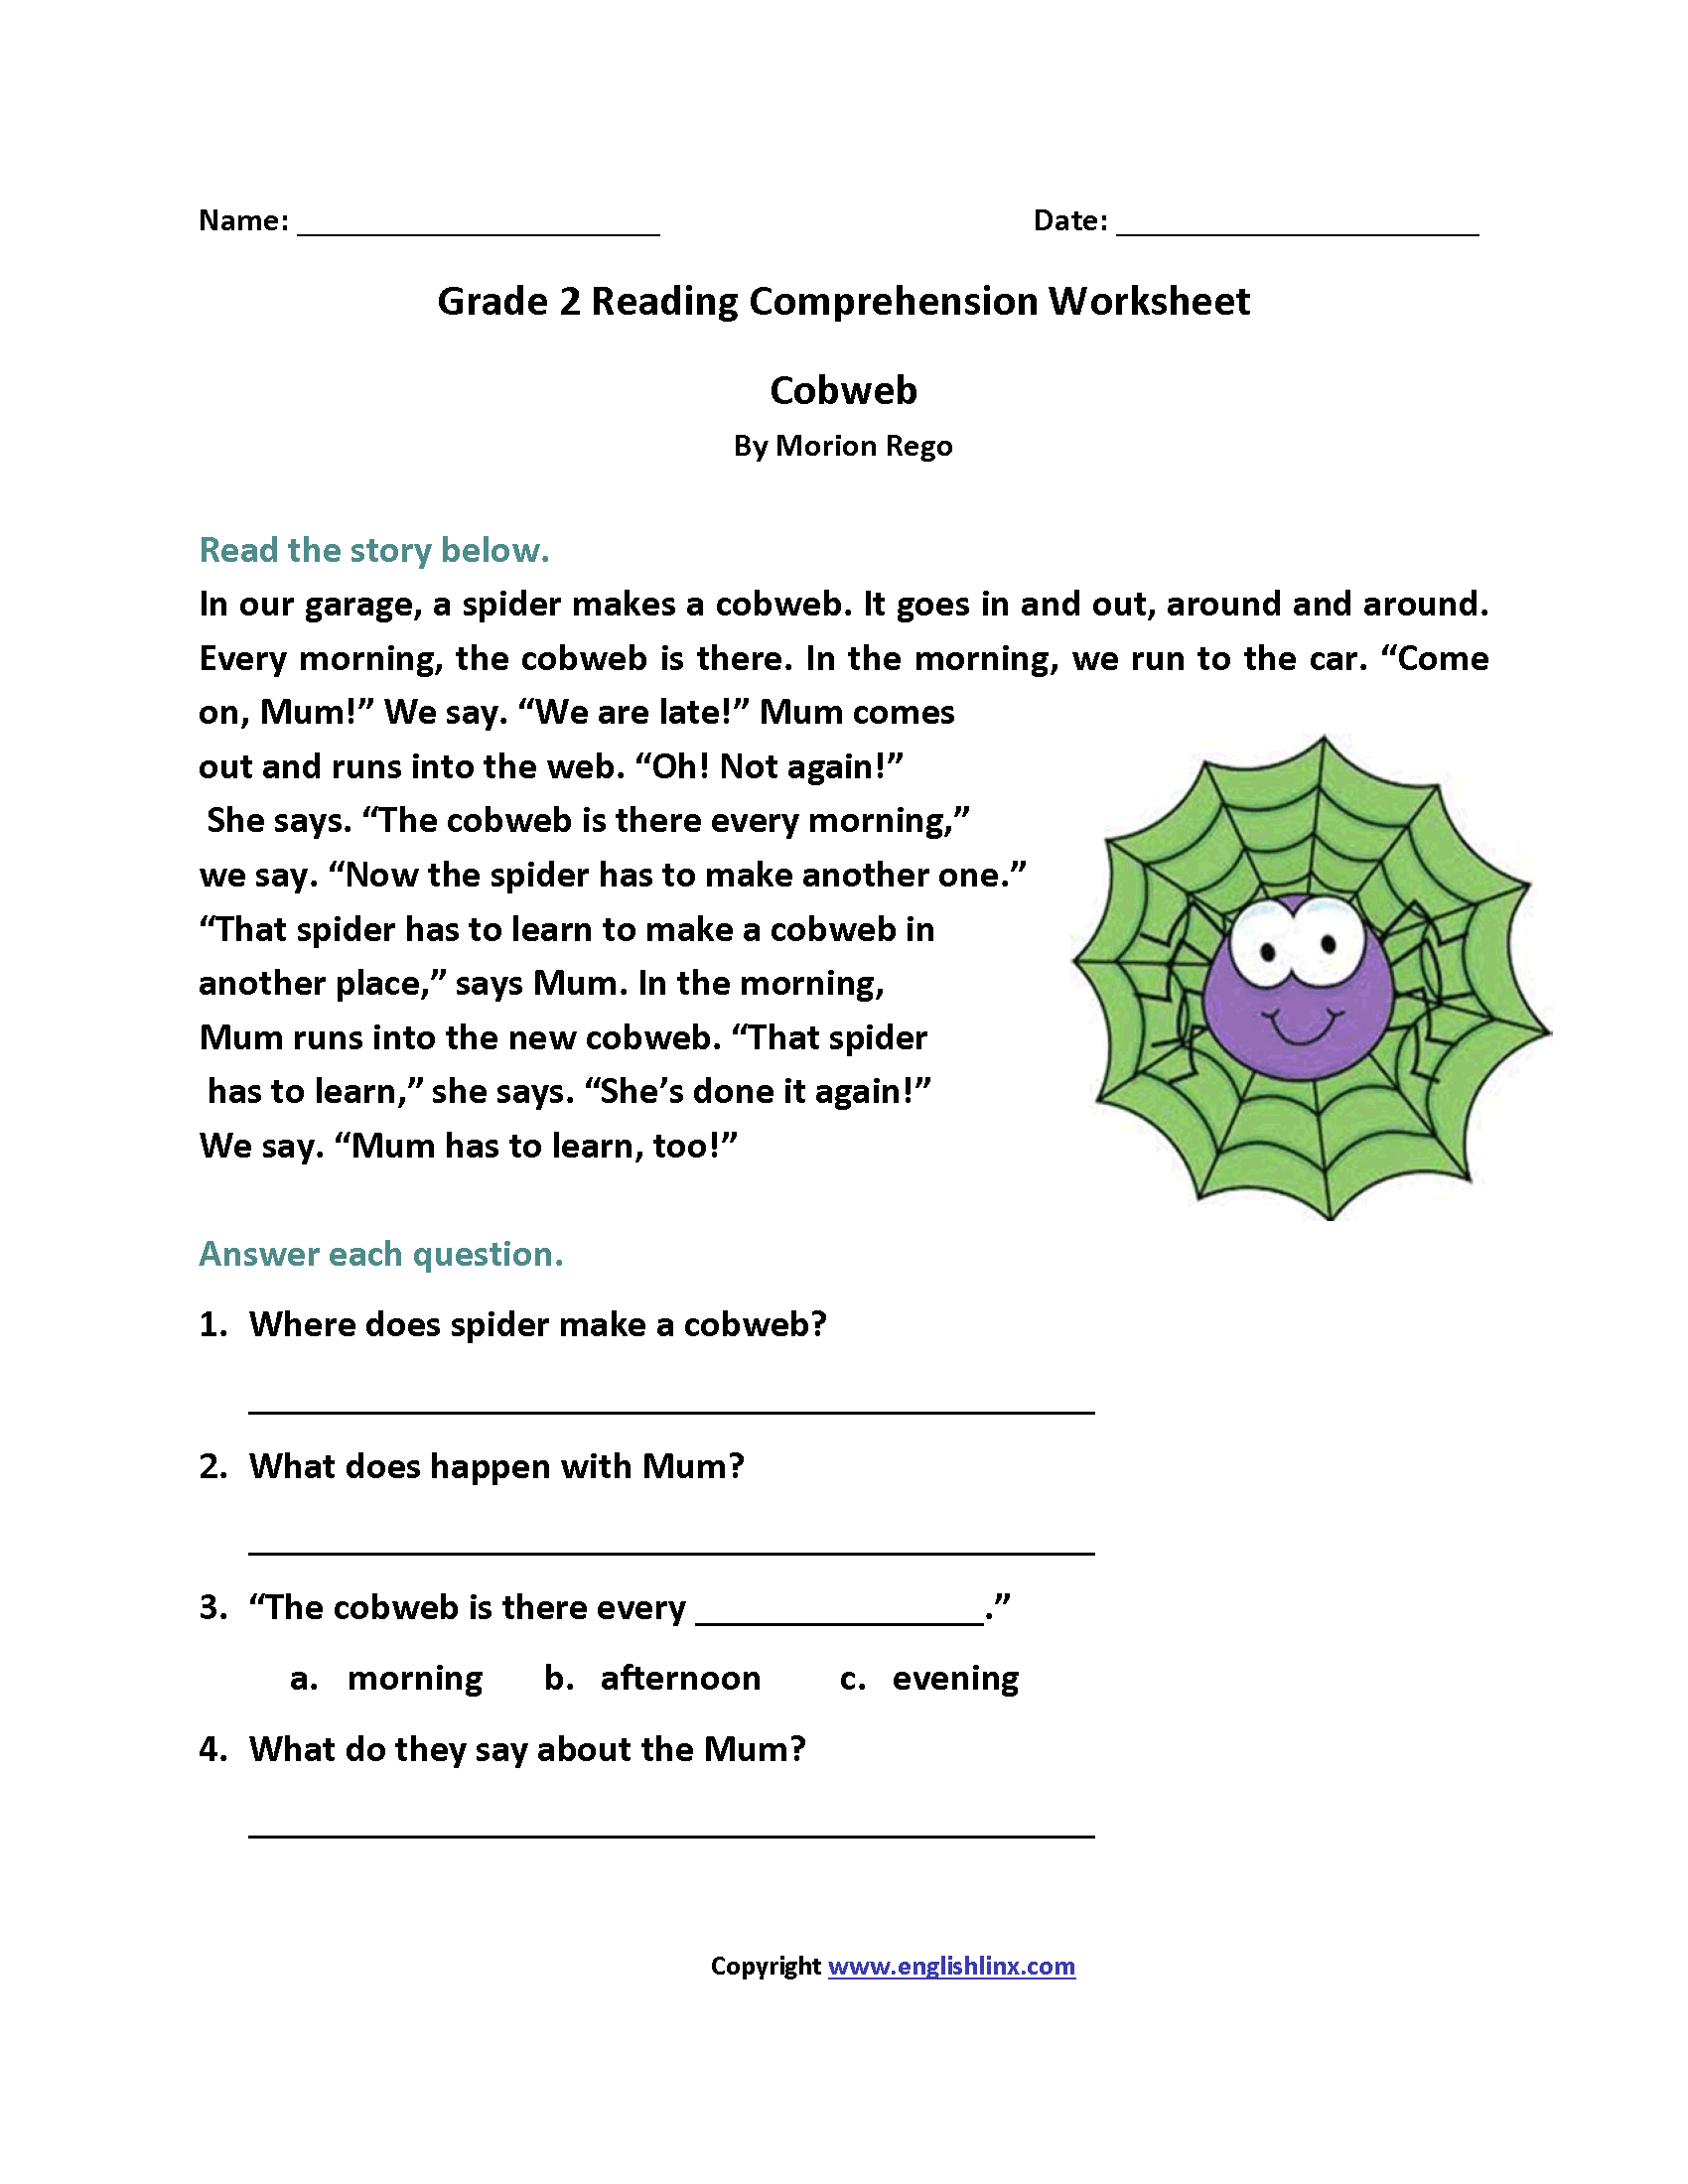 Reading Worksheets For 2nd Grade The Best Worksheets Image